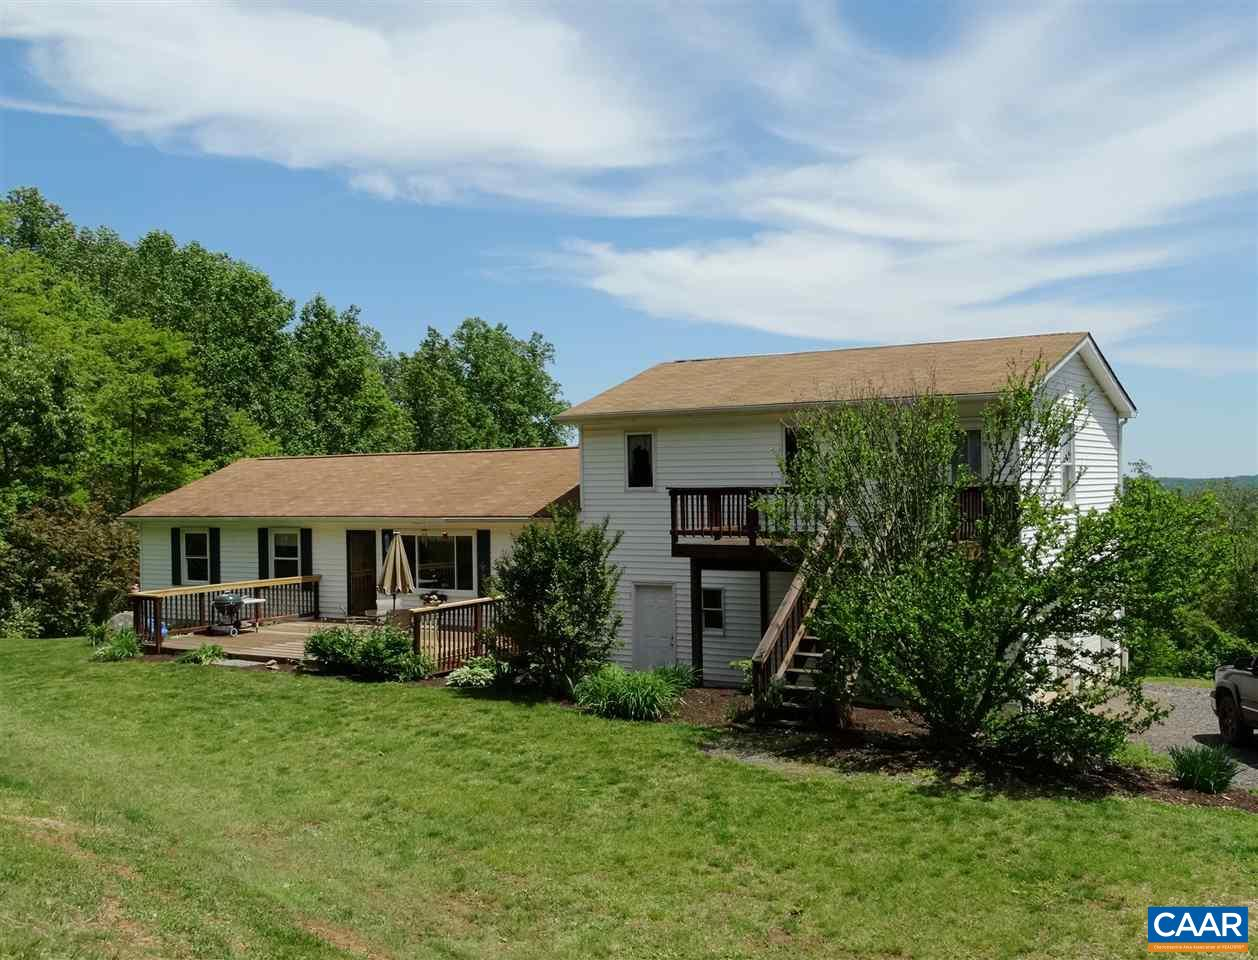 Single Family Home for Sale at 236 DUET Road Madison, Virginia 22727 United States